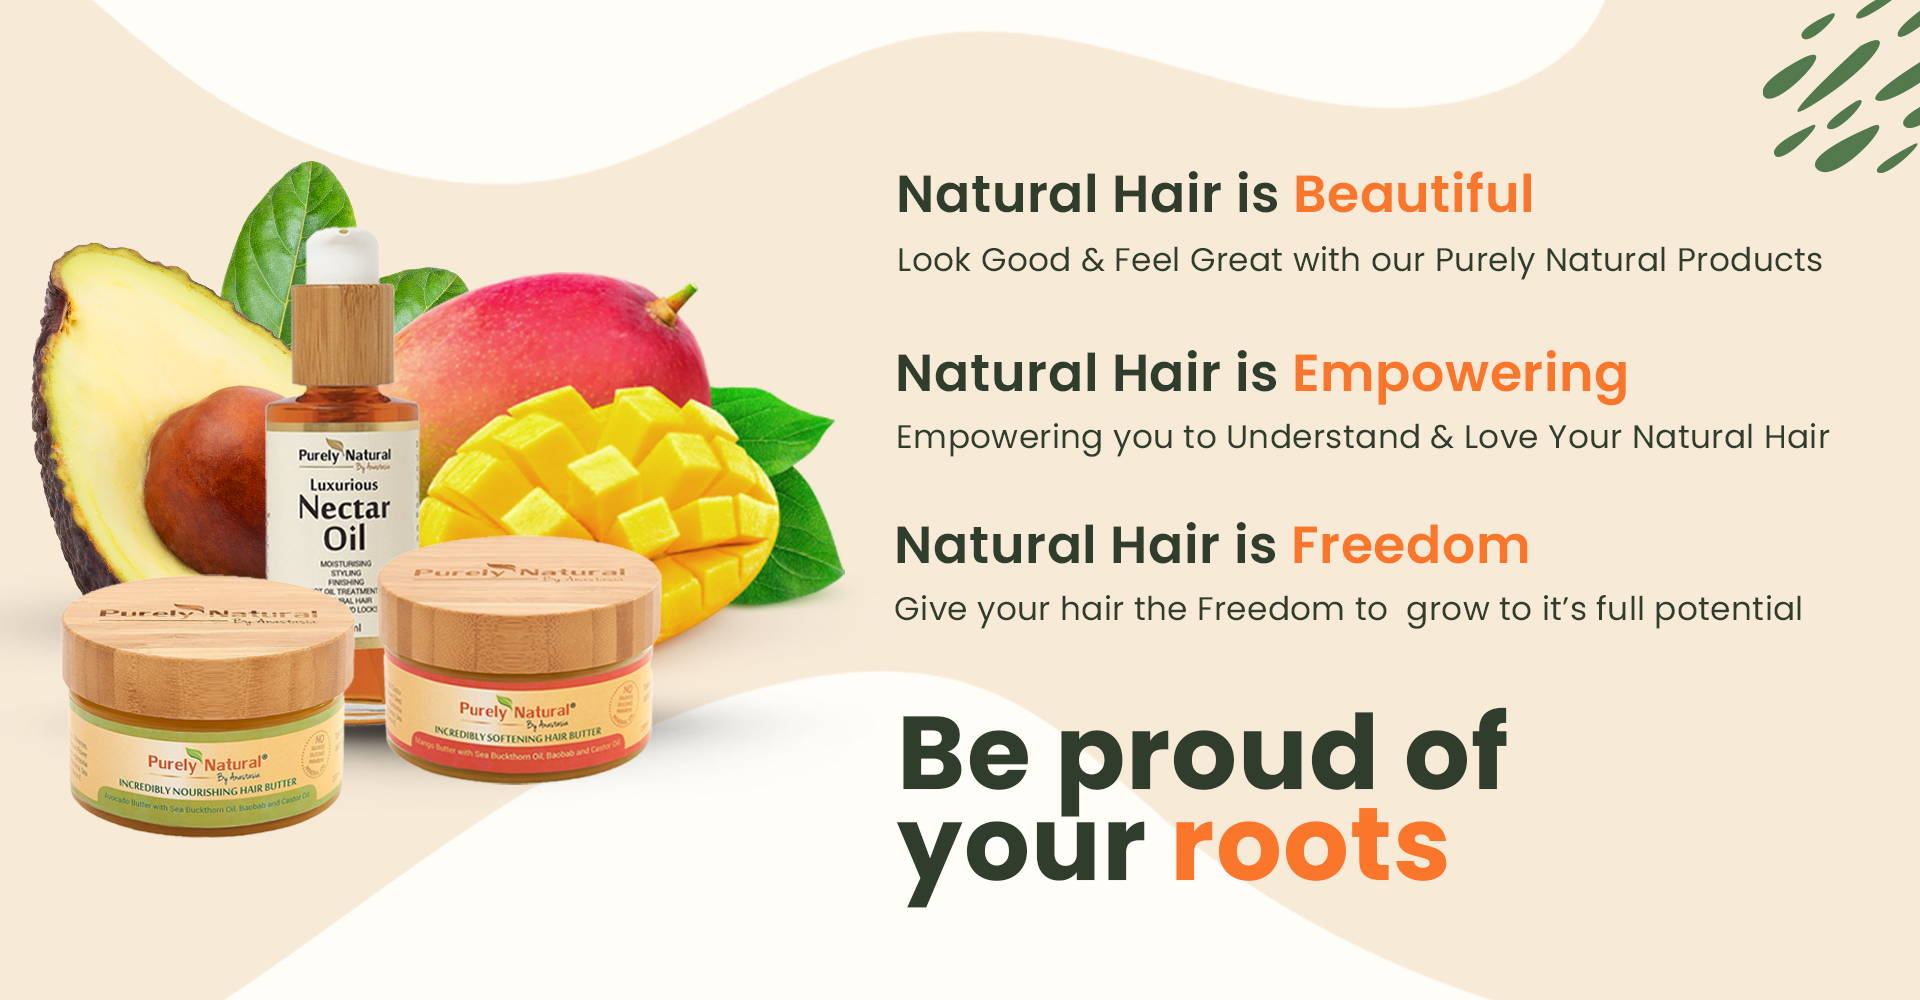 Be Proud of Your Roots Purely Natural by Anastasia